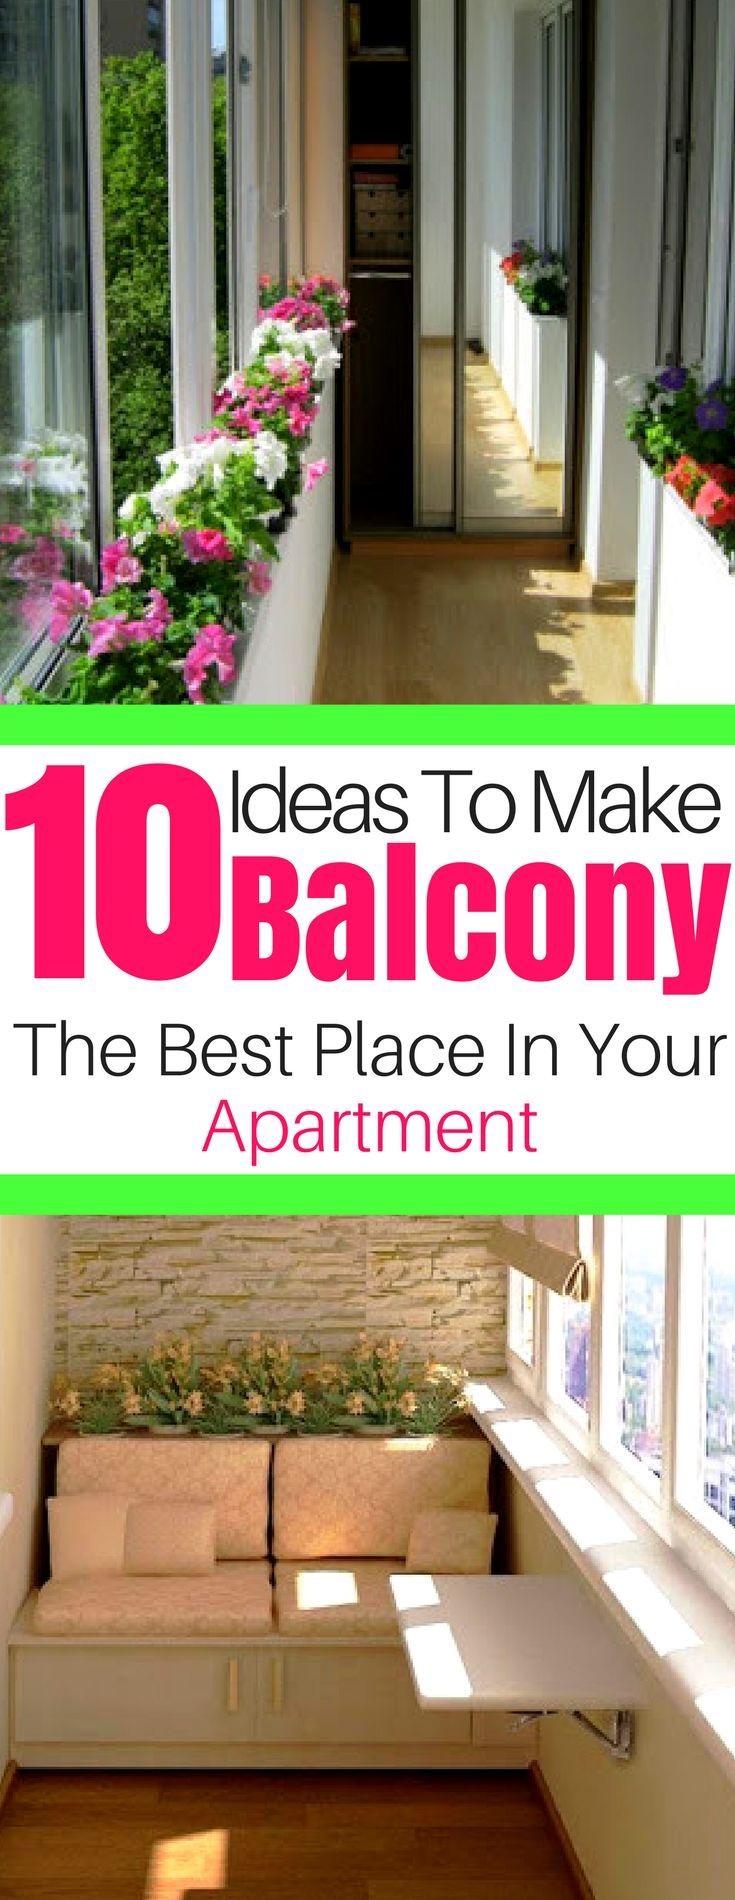 10 Ideas To Make Your Balcony The